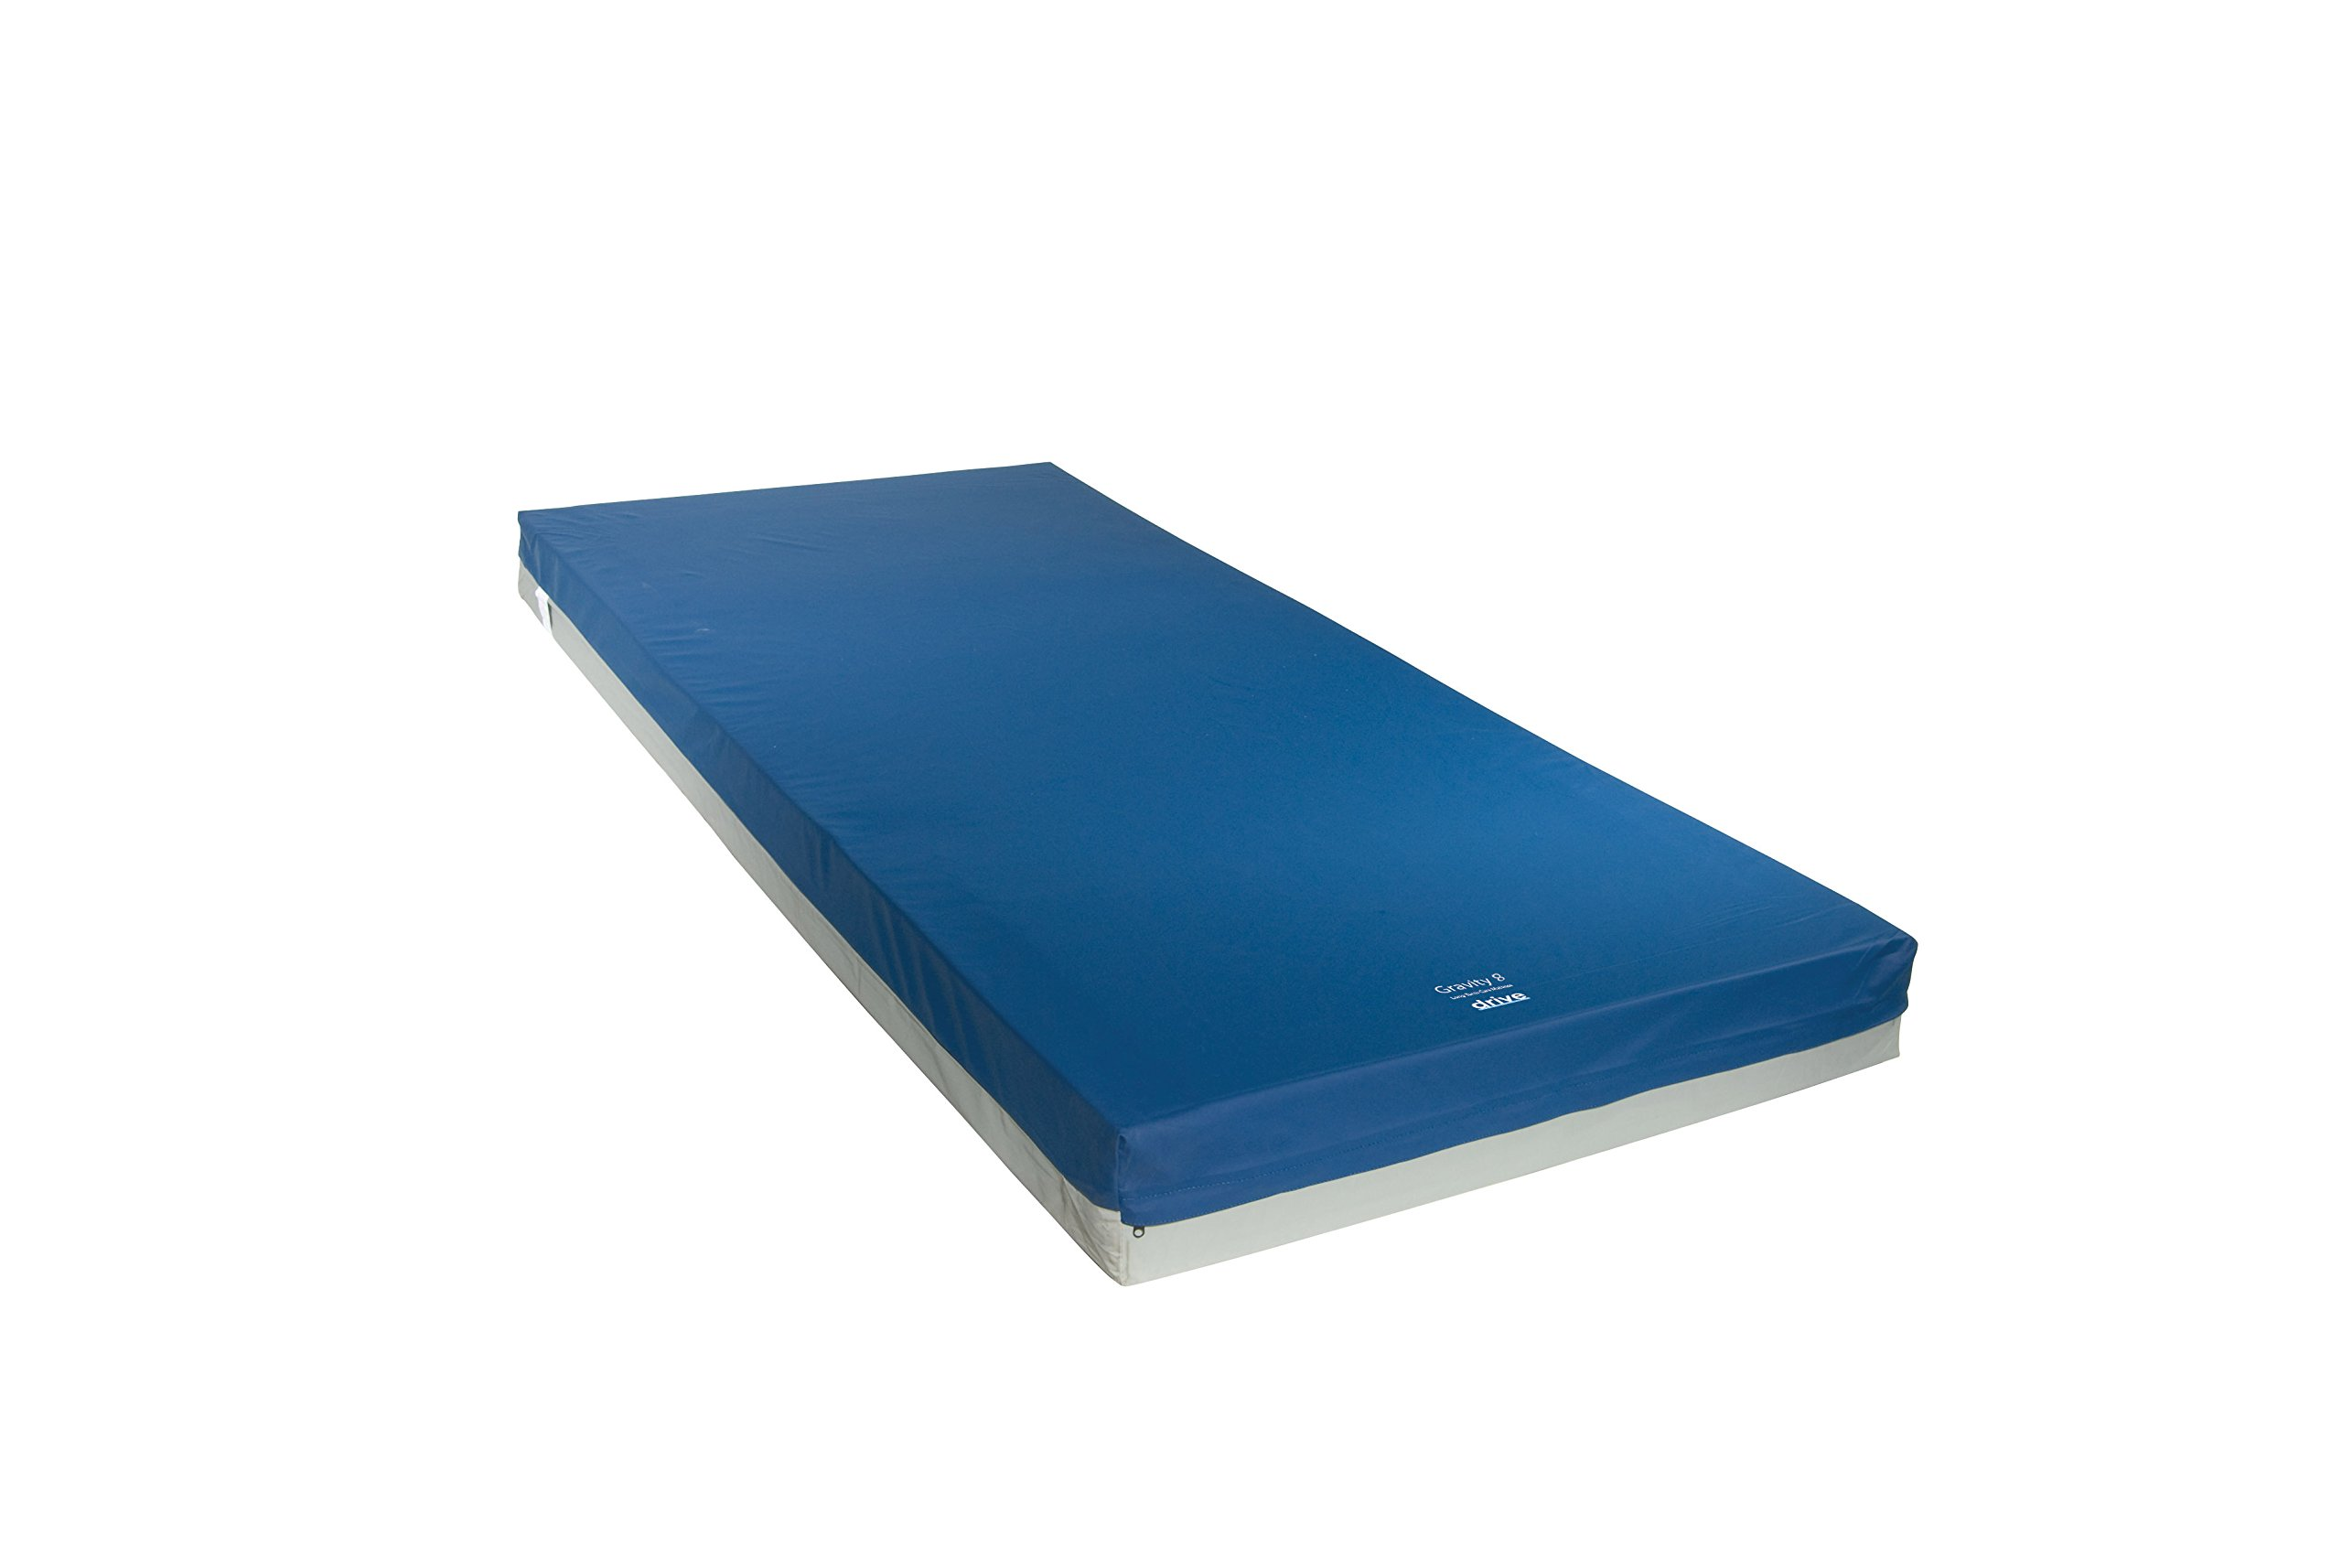 Drive Medical 15887 Gravity 8 Long Term Care Pressure Redistribution Mattress, Blue